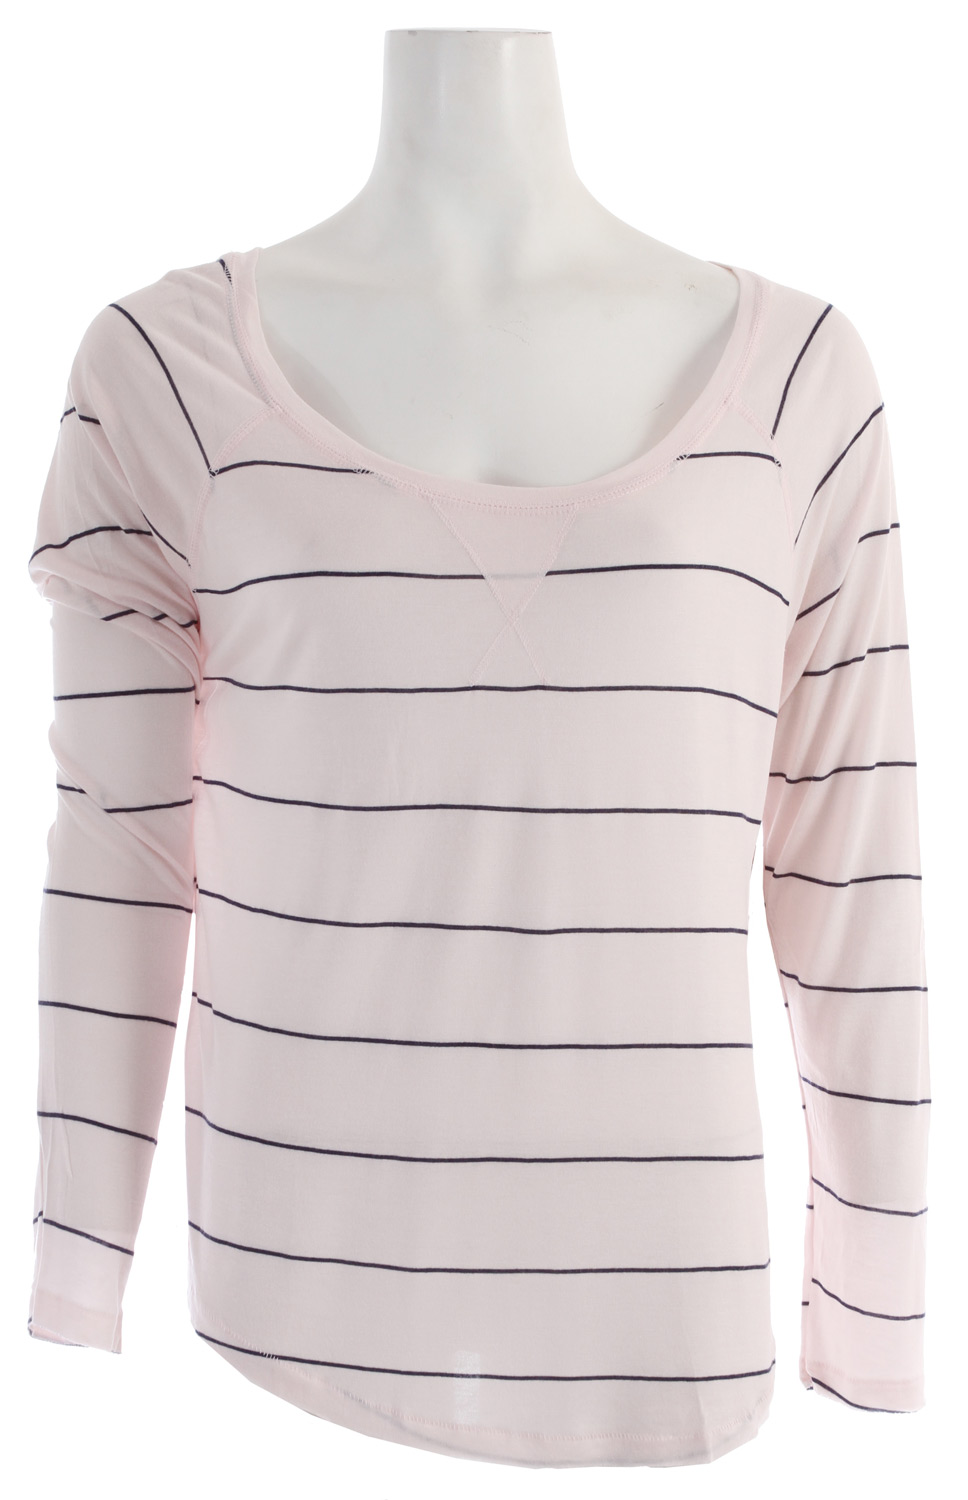 Surf Billabong Dazzle Days Shirt Peaceful Pink - $23.95